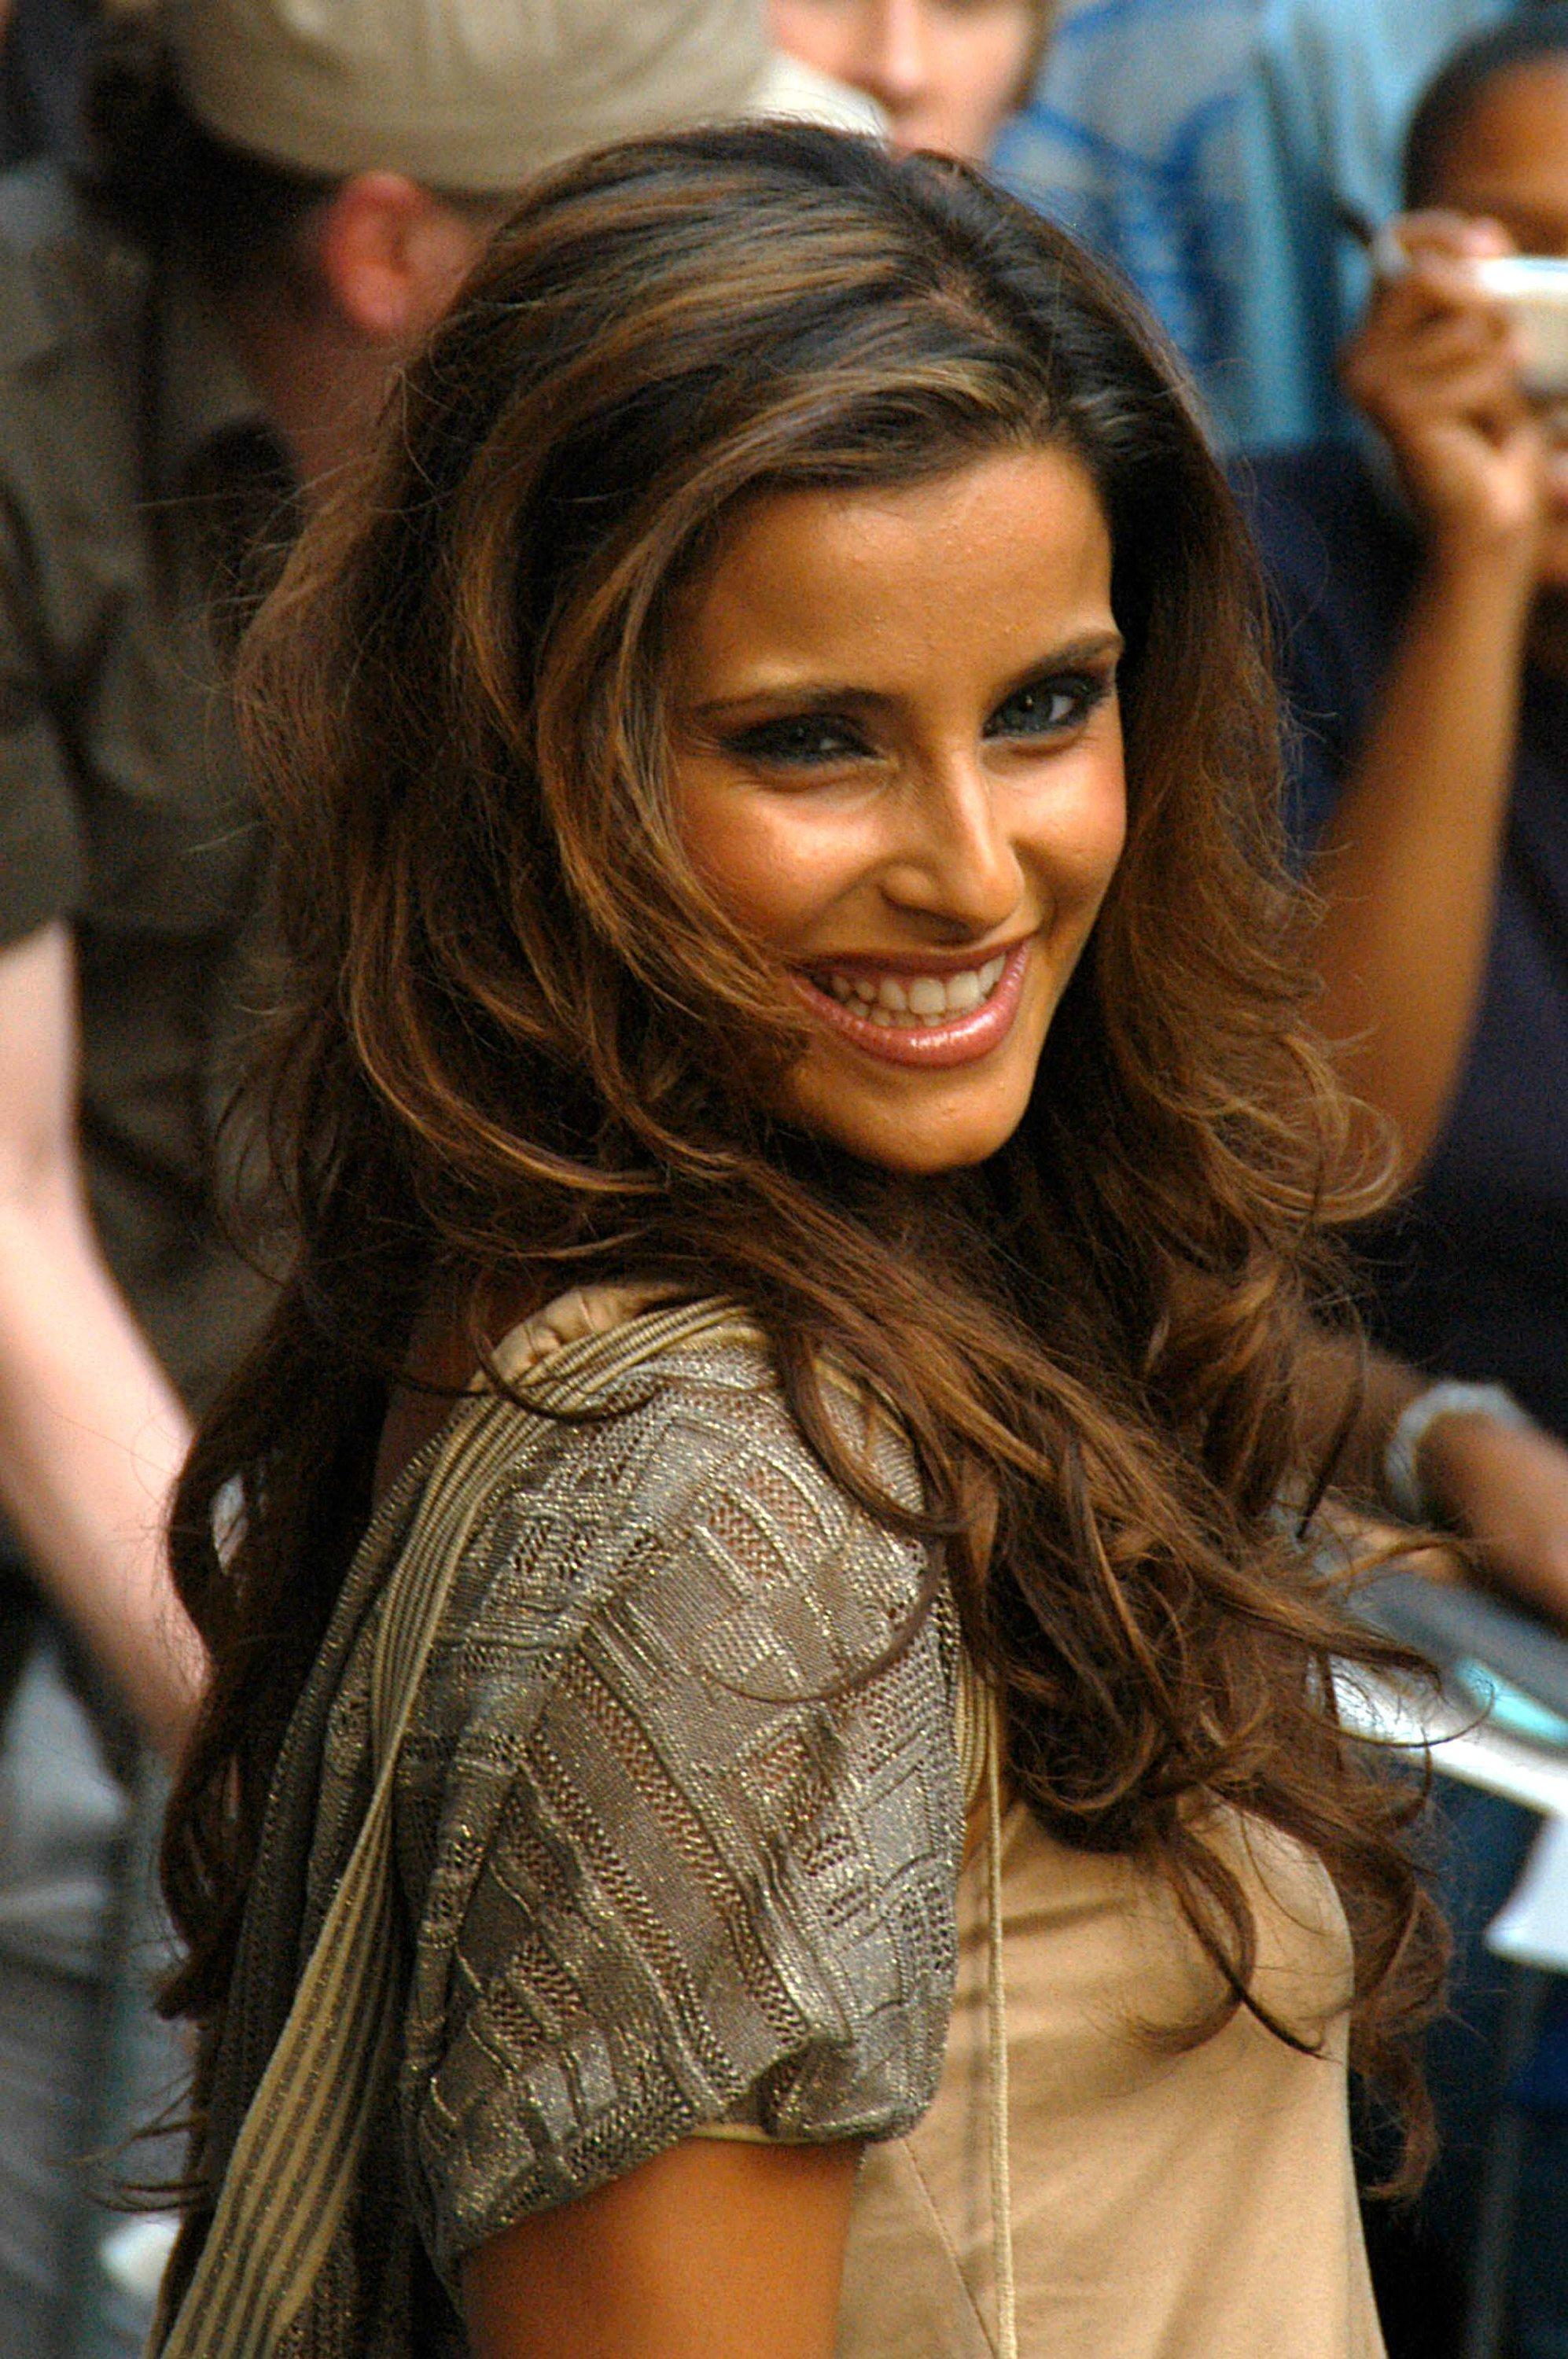 Nelly furtado - more free pictures 2.